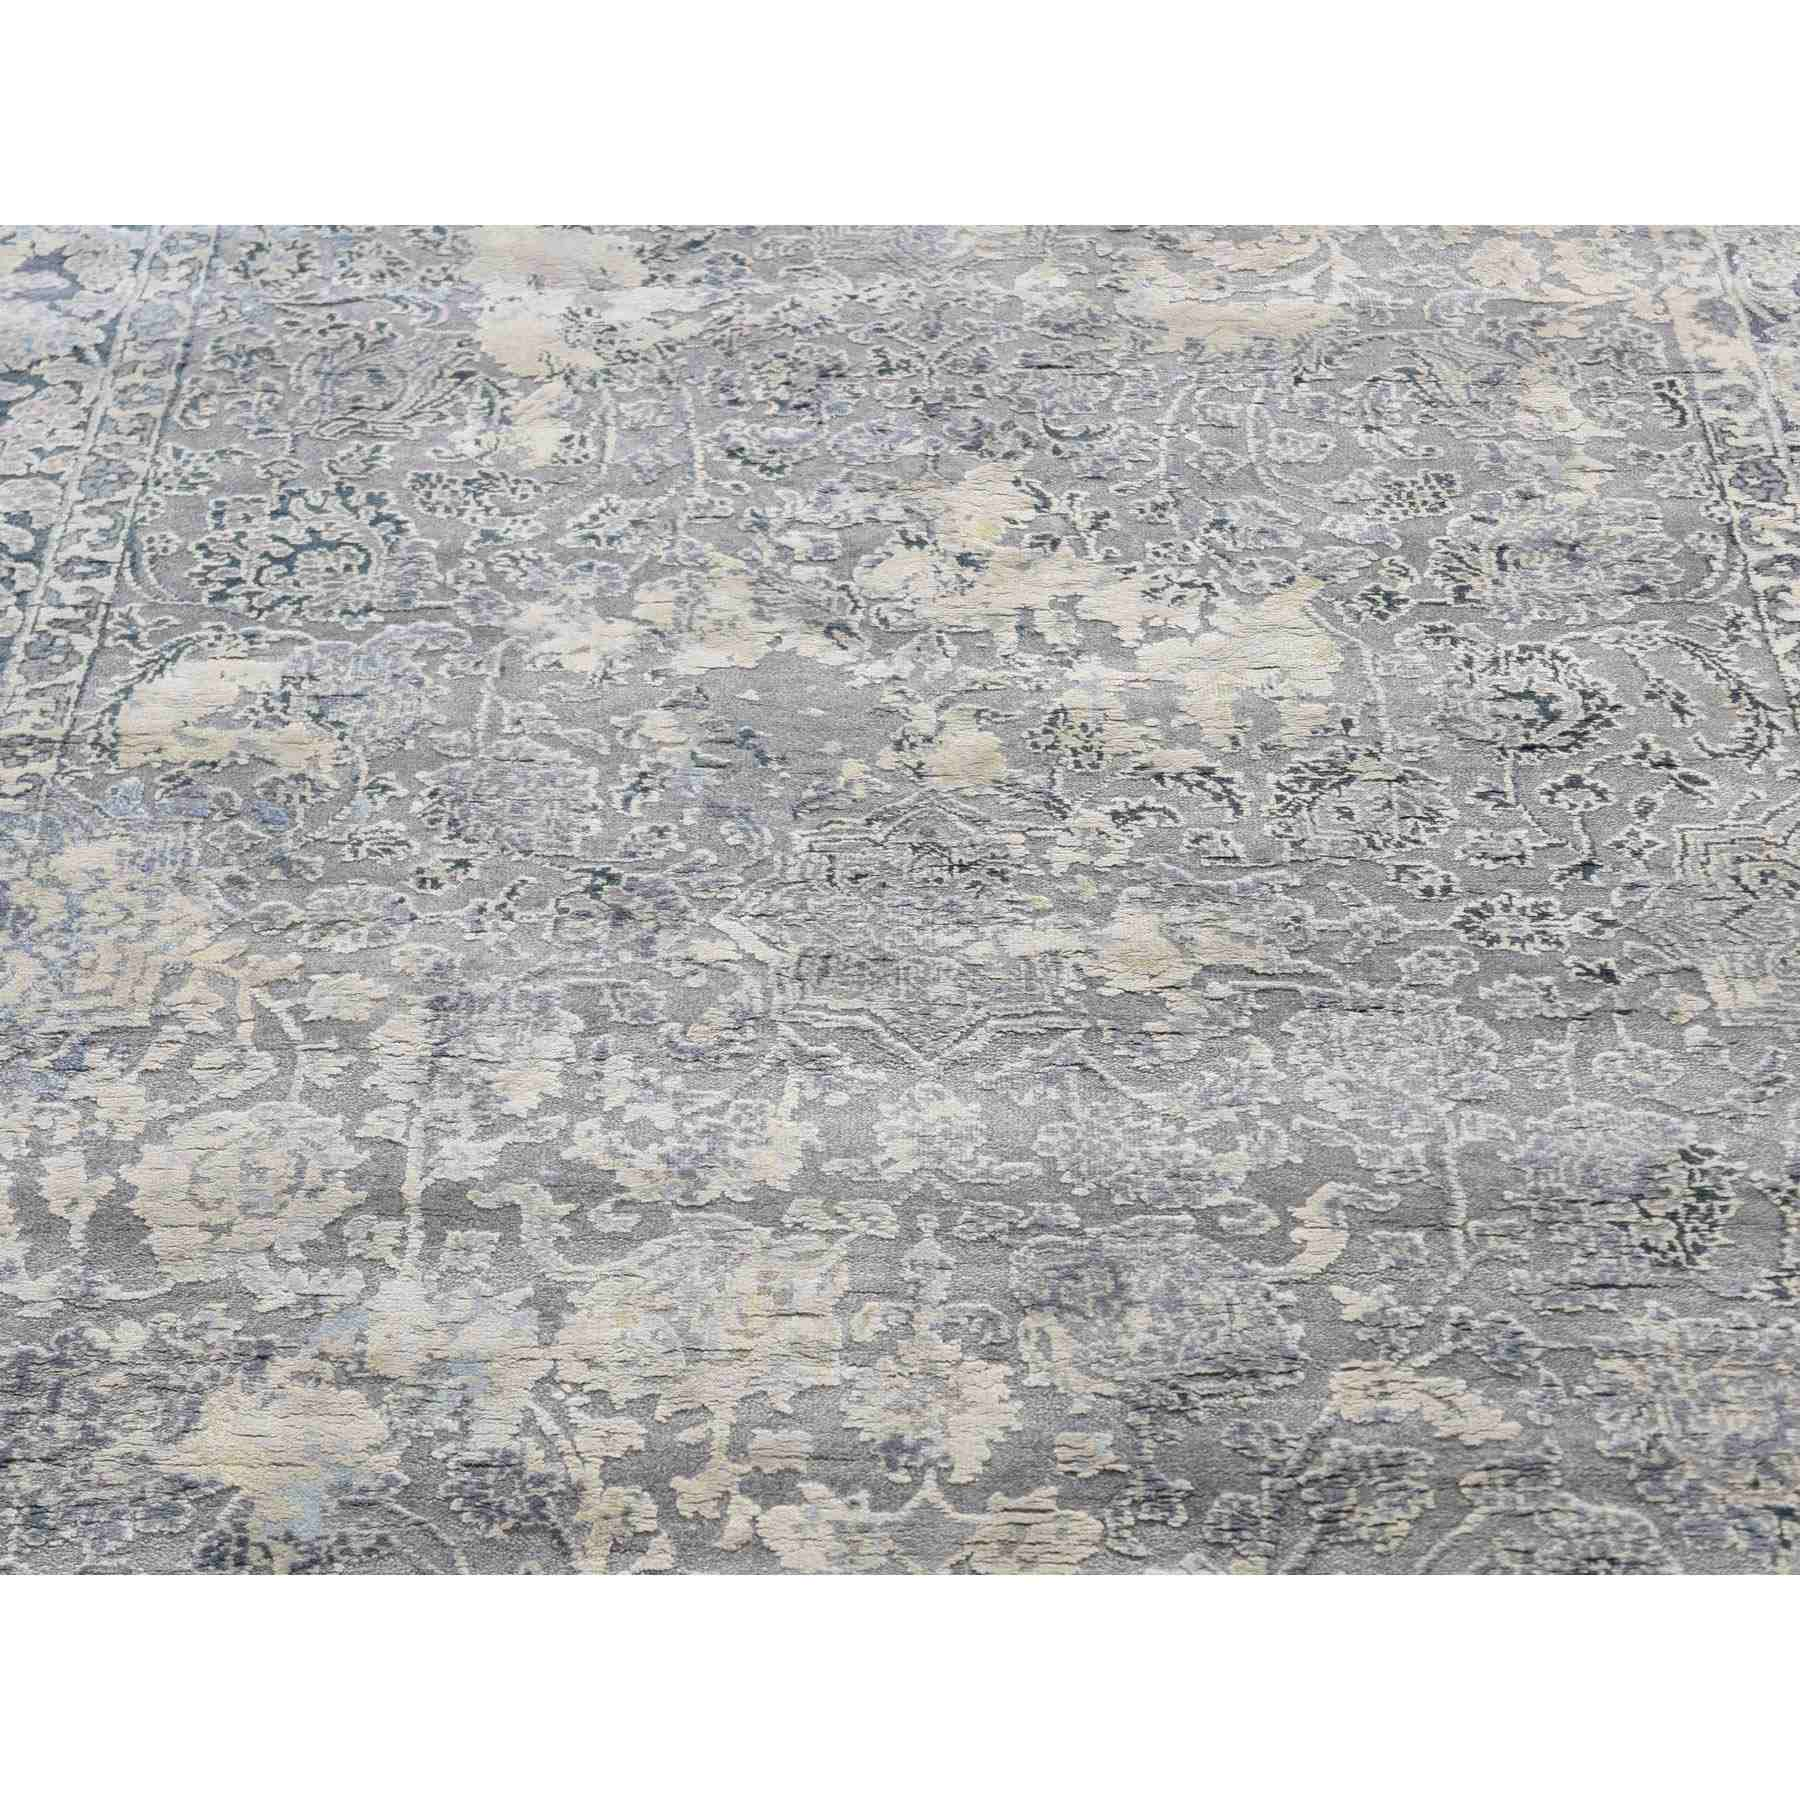 Transitional-Hand-Knotted-Rug-239740